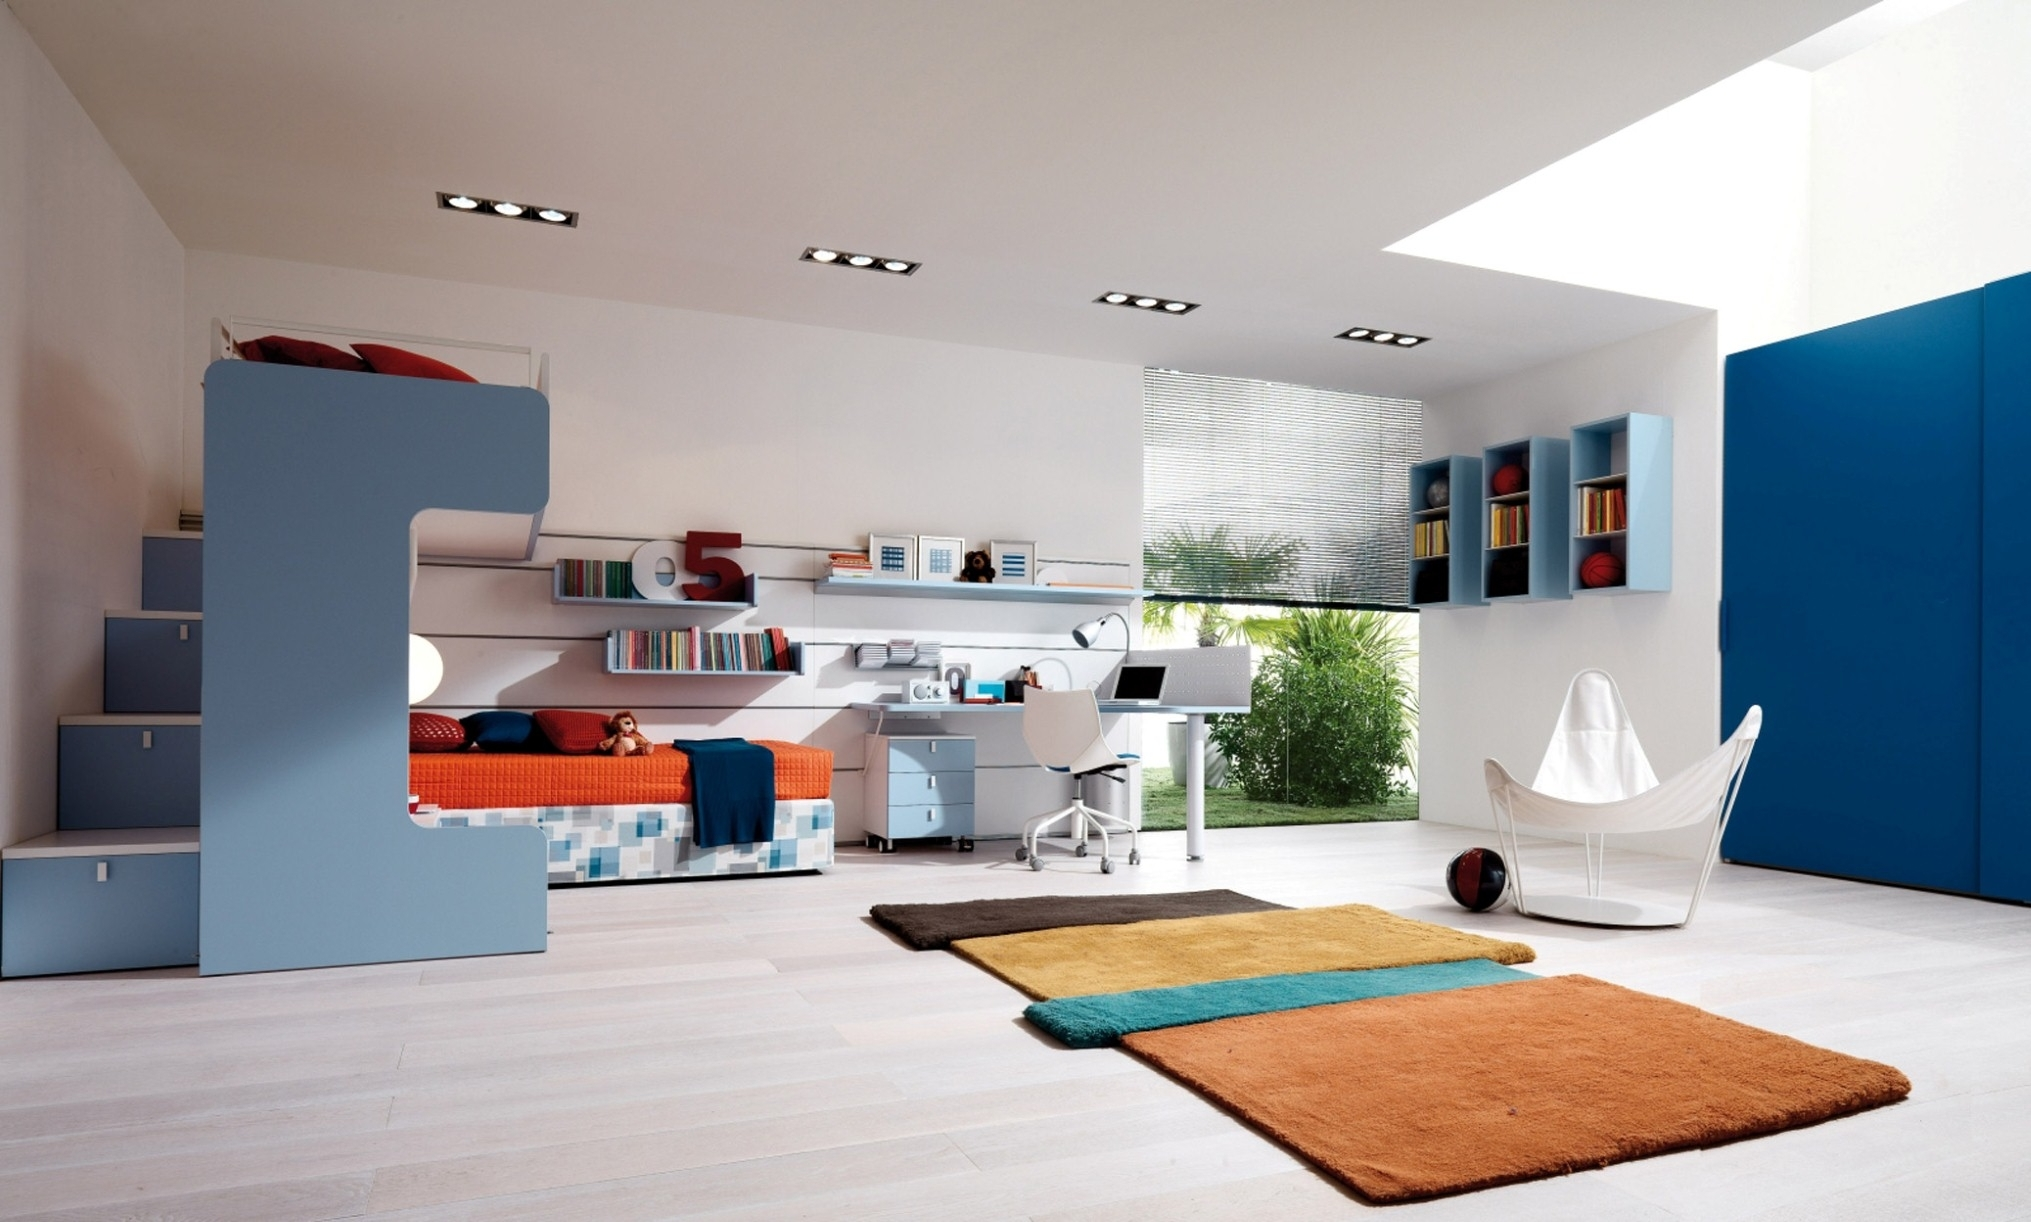 Luxurious Awesome Teenage Bedroom With Blue Interior Decor Plus Brown Rugs And Orange Bedding (Image 3 of 123)